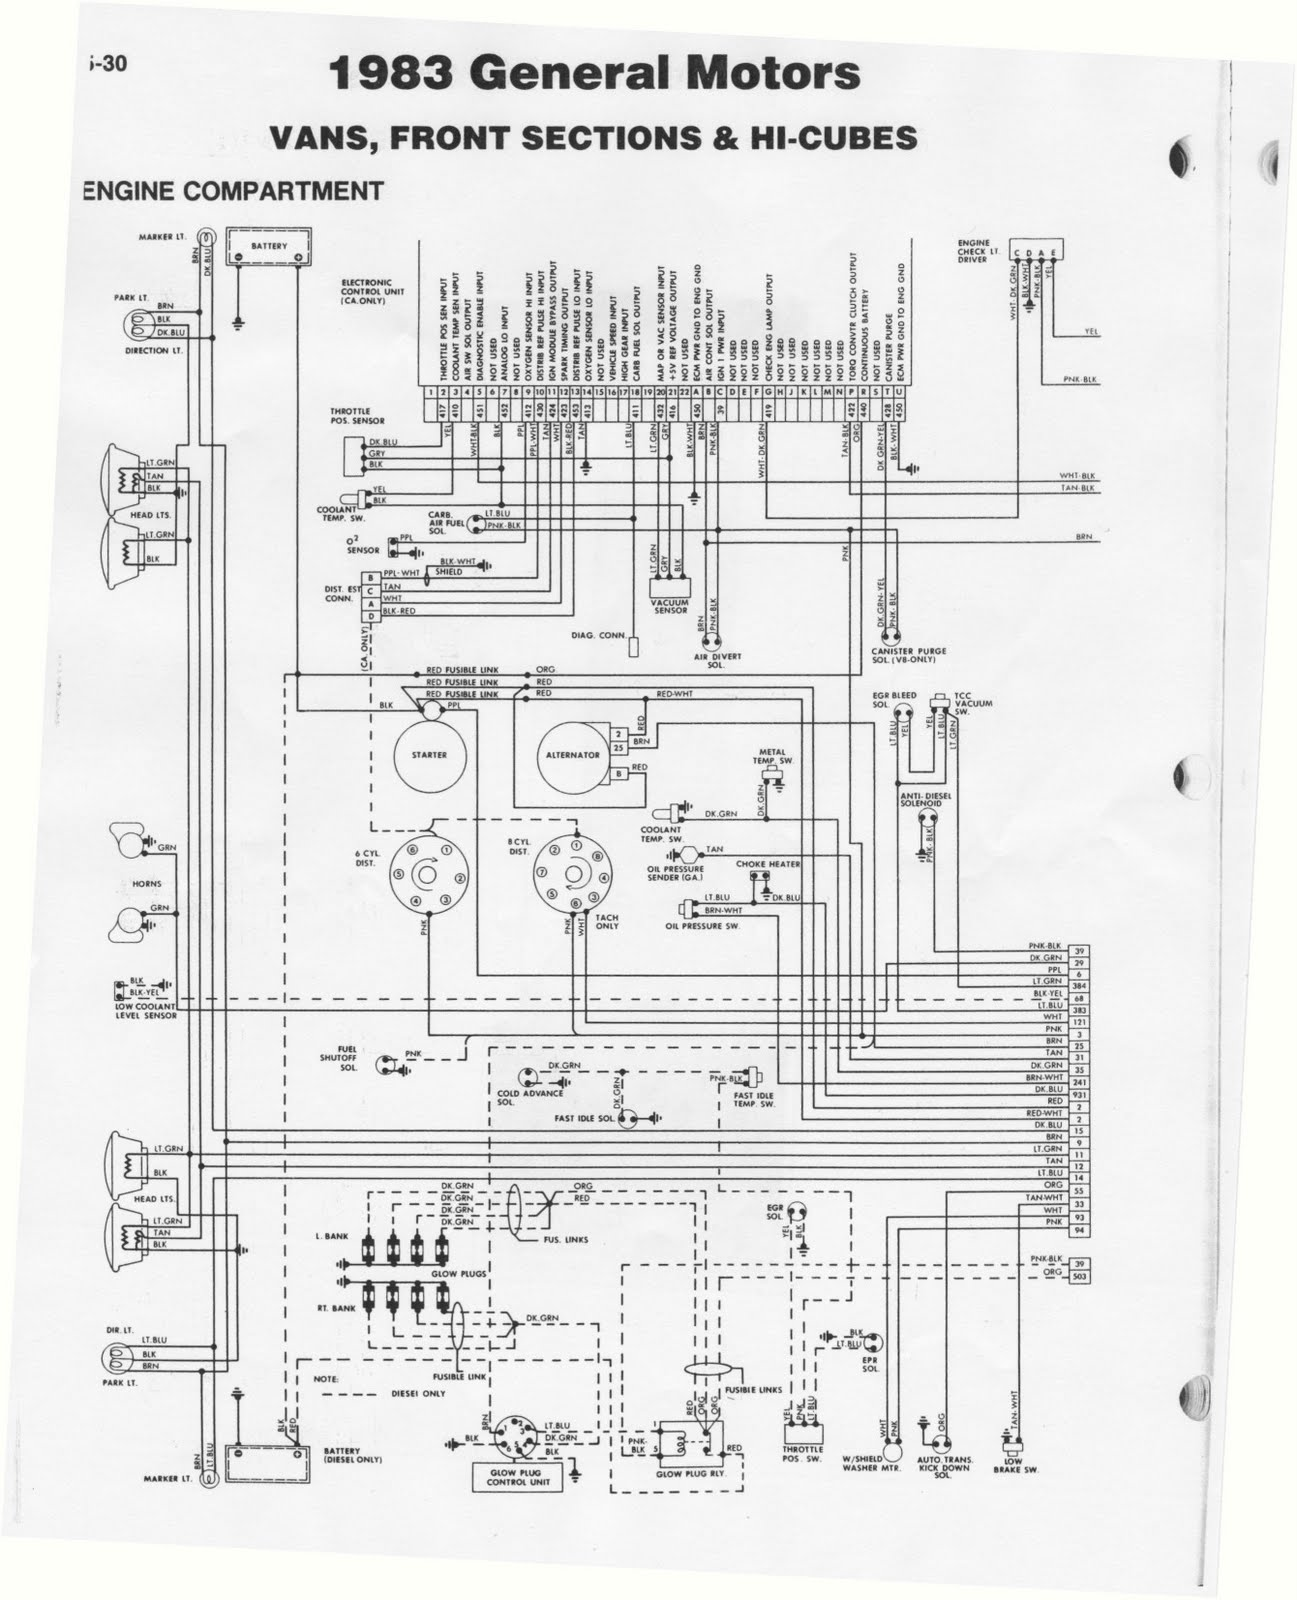 Famous Scosche Gm2000 Wire Harness Contemporary - Wiring Diagram ...